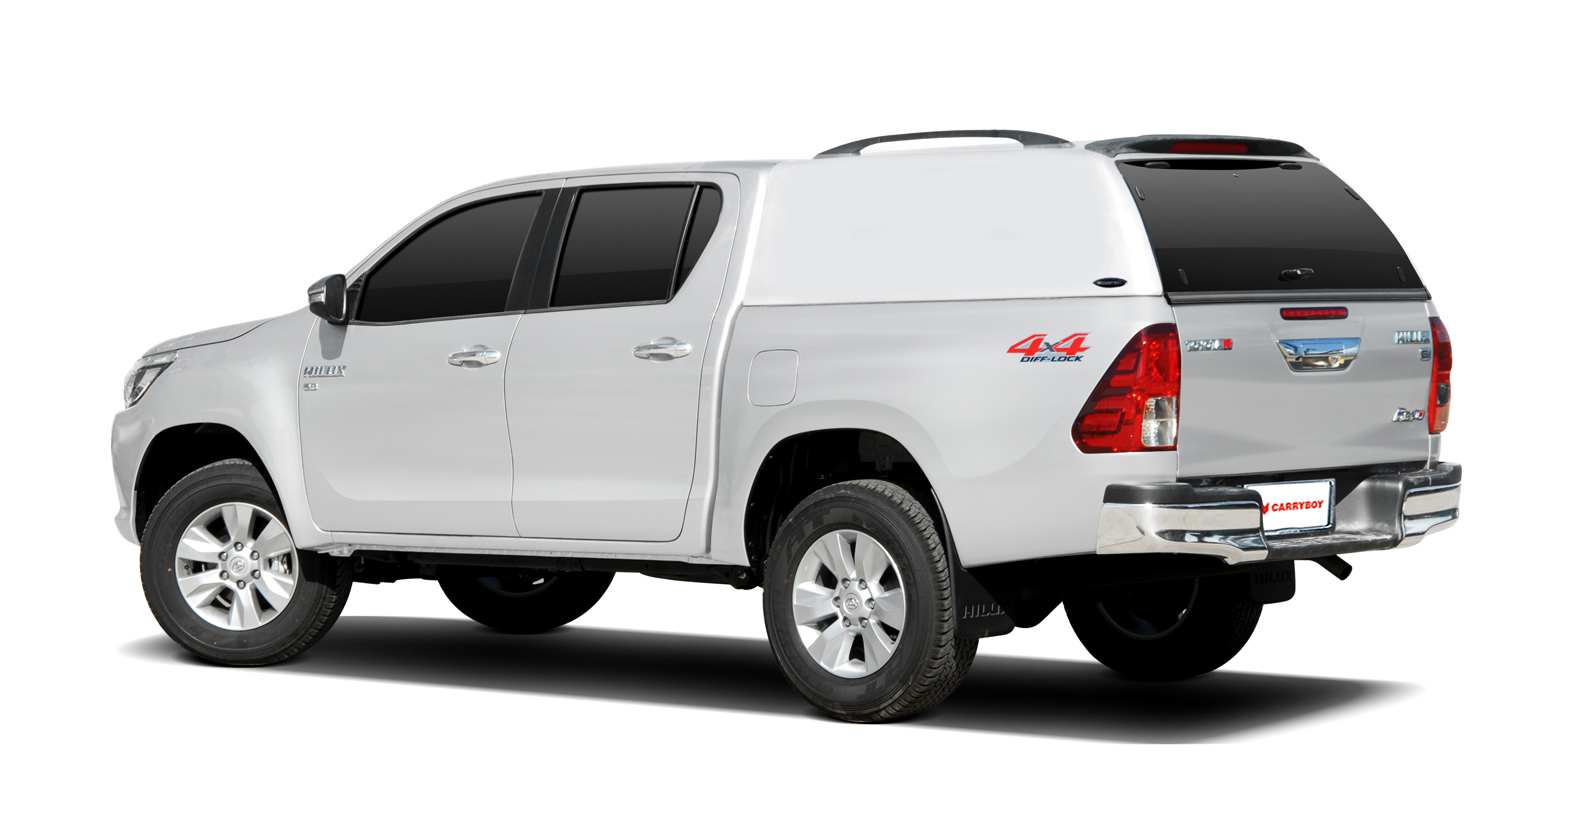 Кунг CARRYBOY S560 WO Toyota Hilux Revo